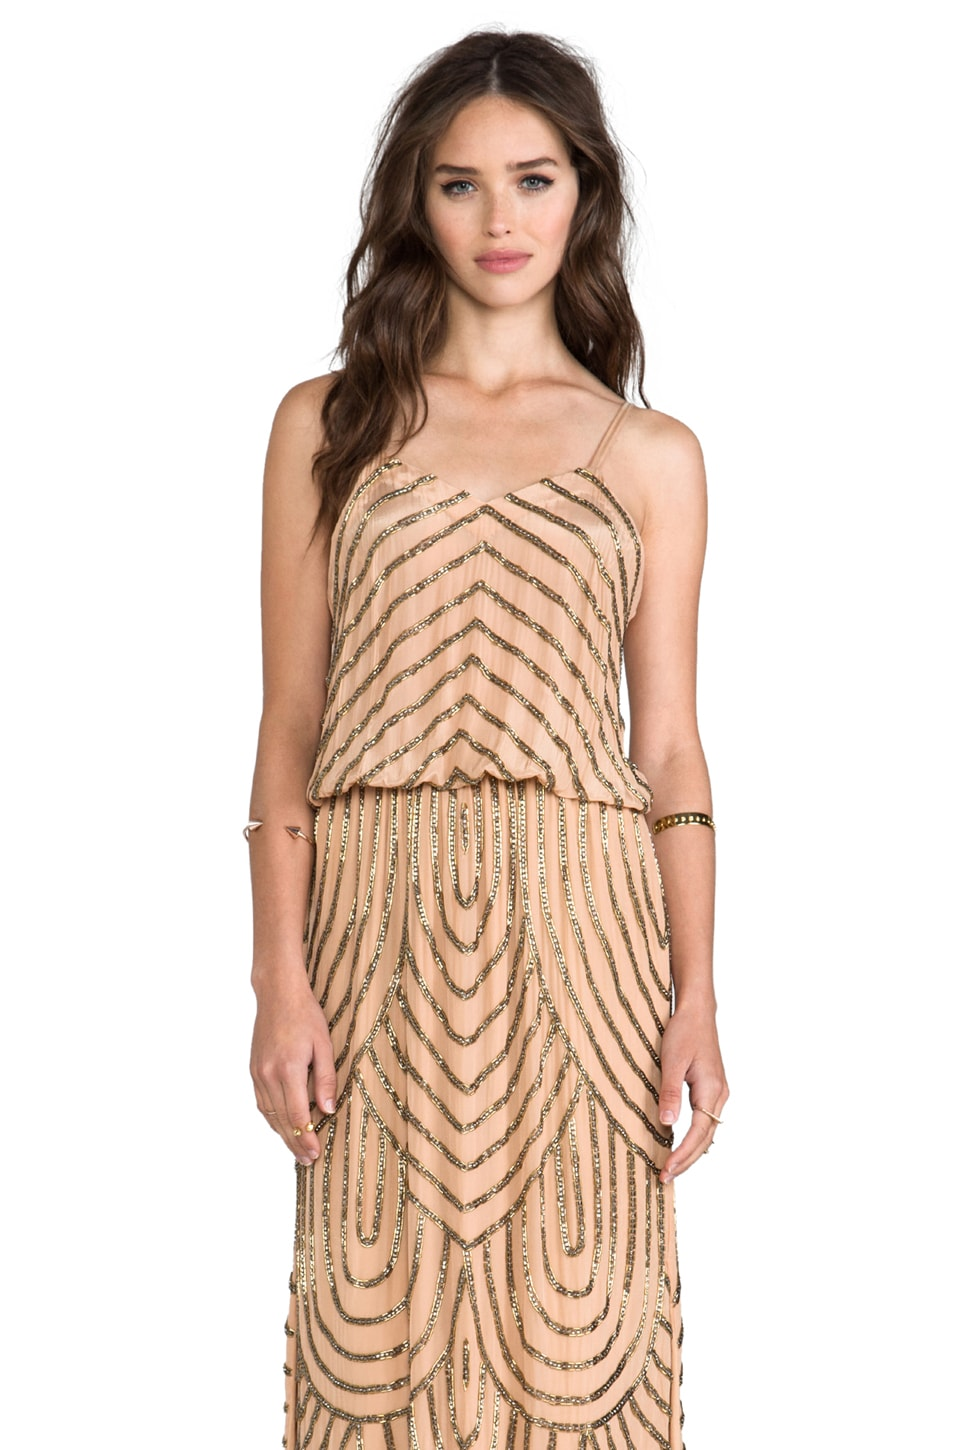 Karina Grimaldi Deco Beaded Maxi Dress in Nude